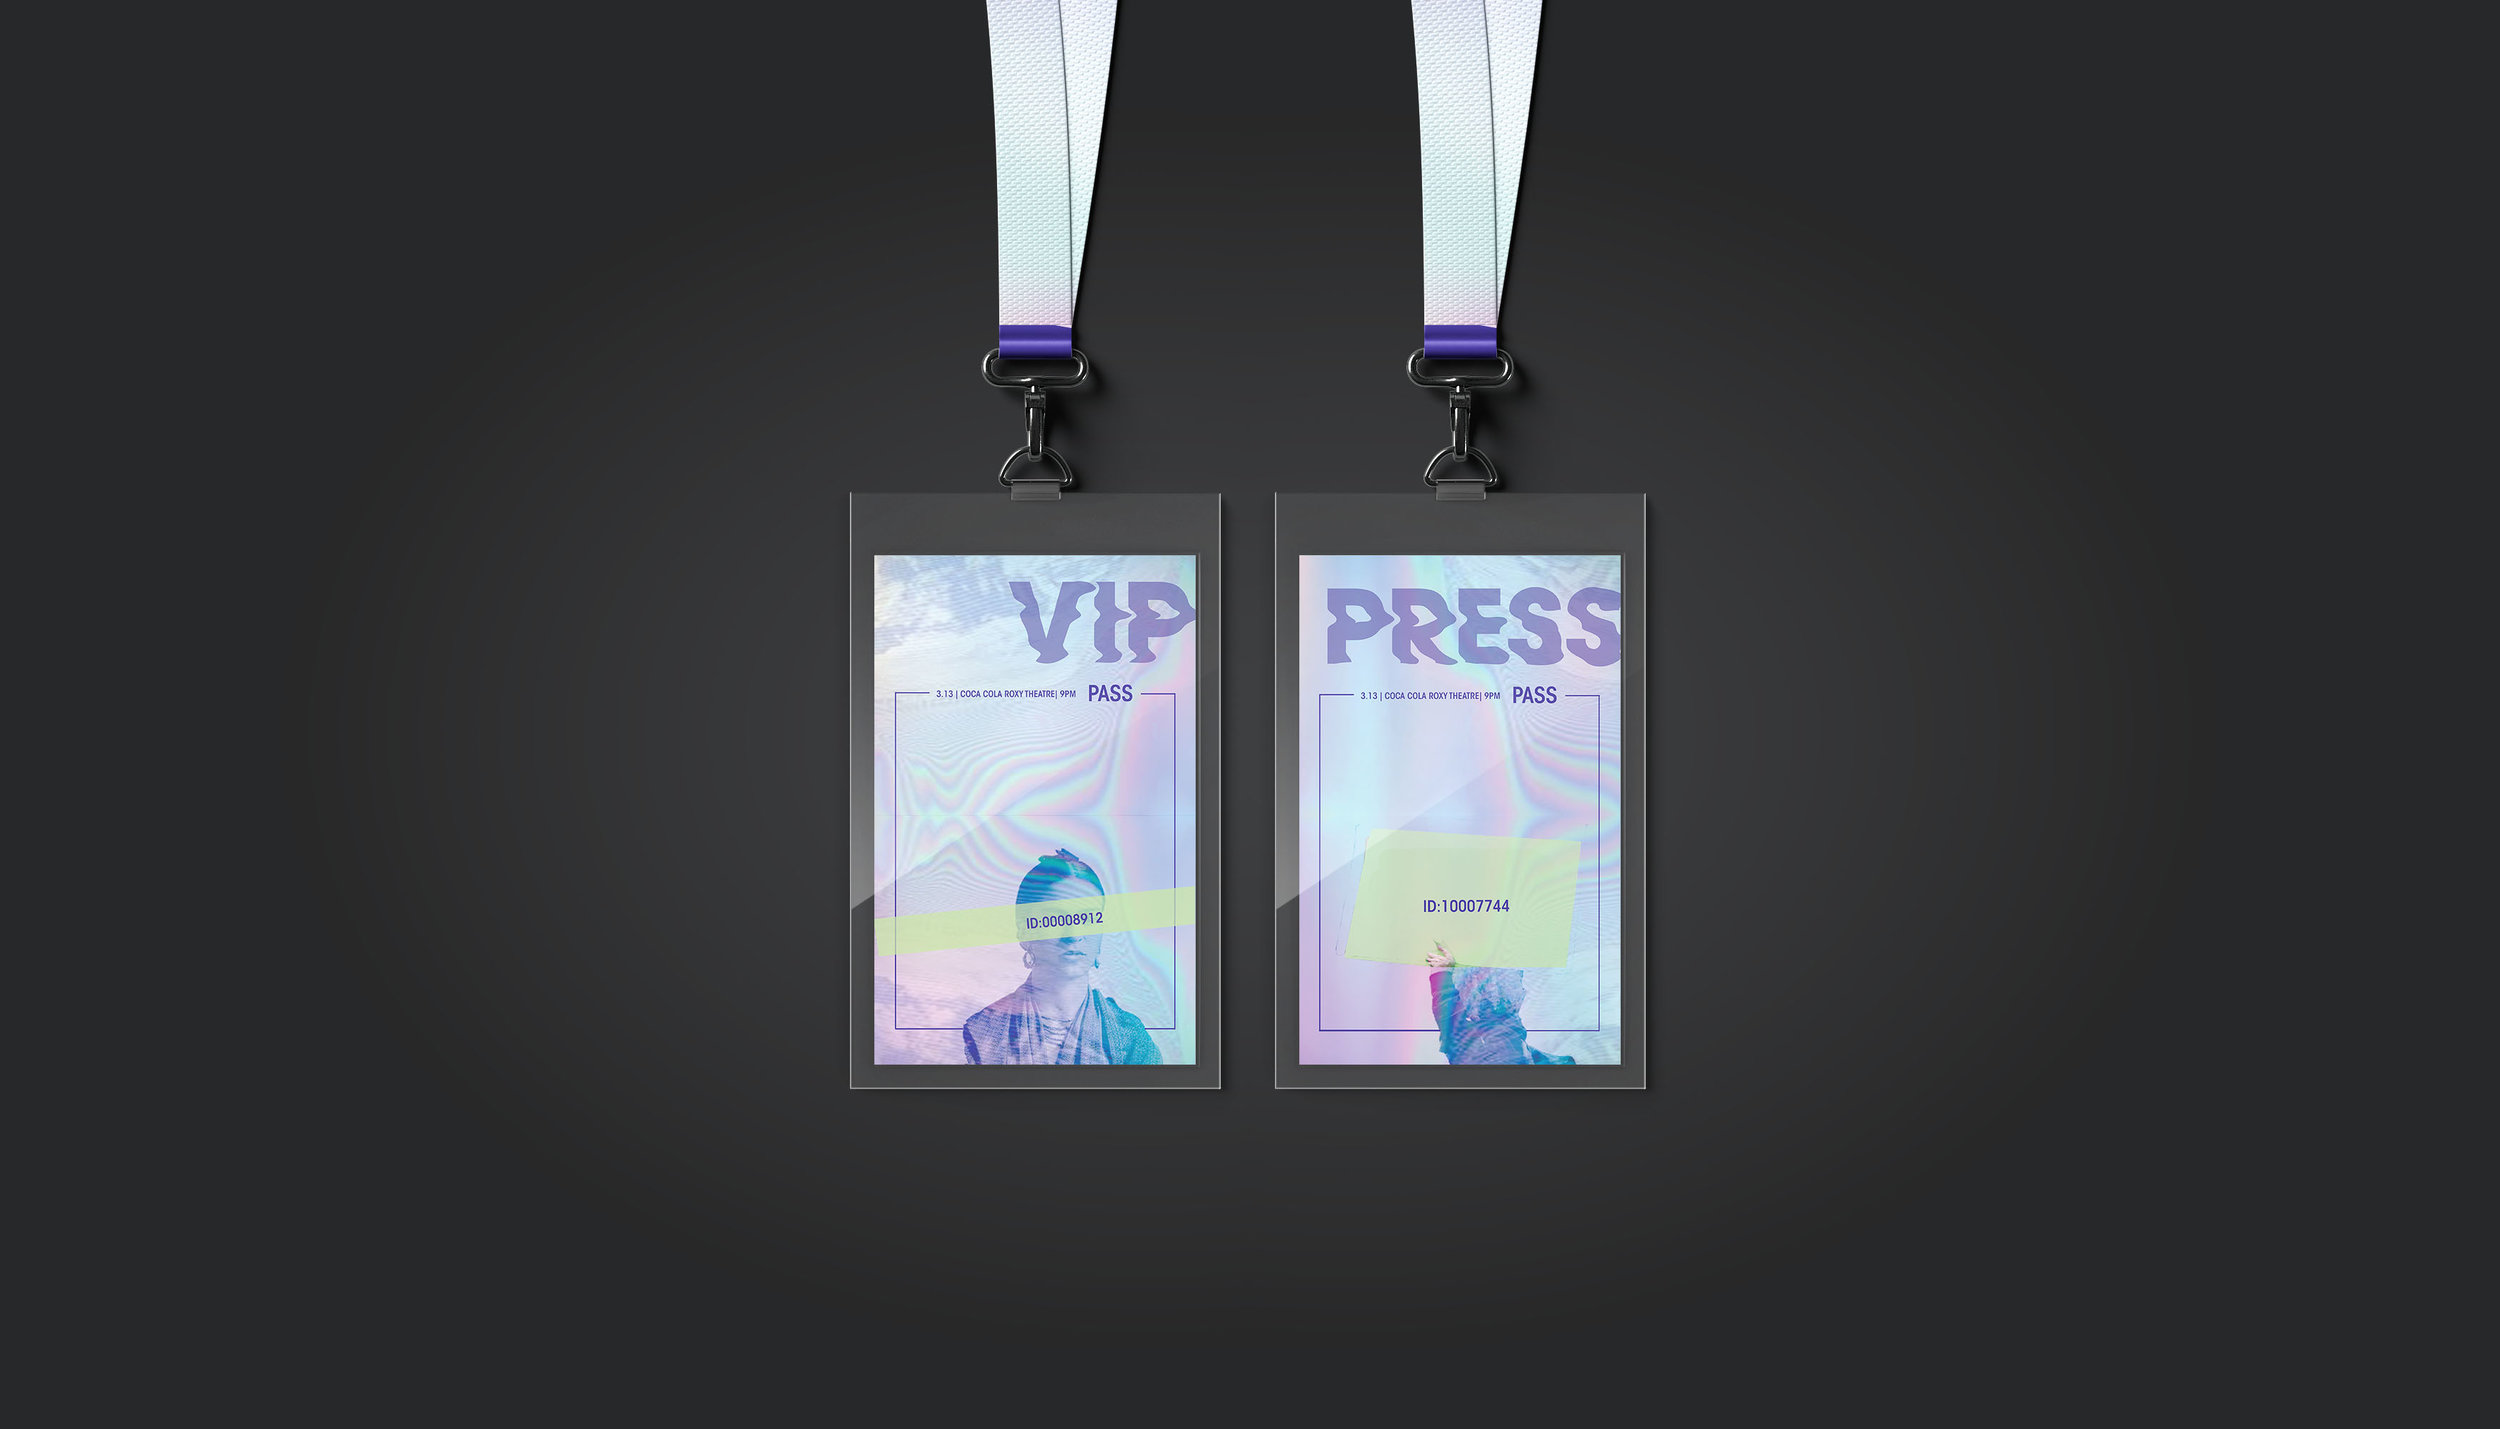 MGMT VIP + PRESS PASS mockup 2.jpg